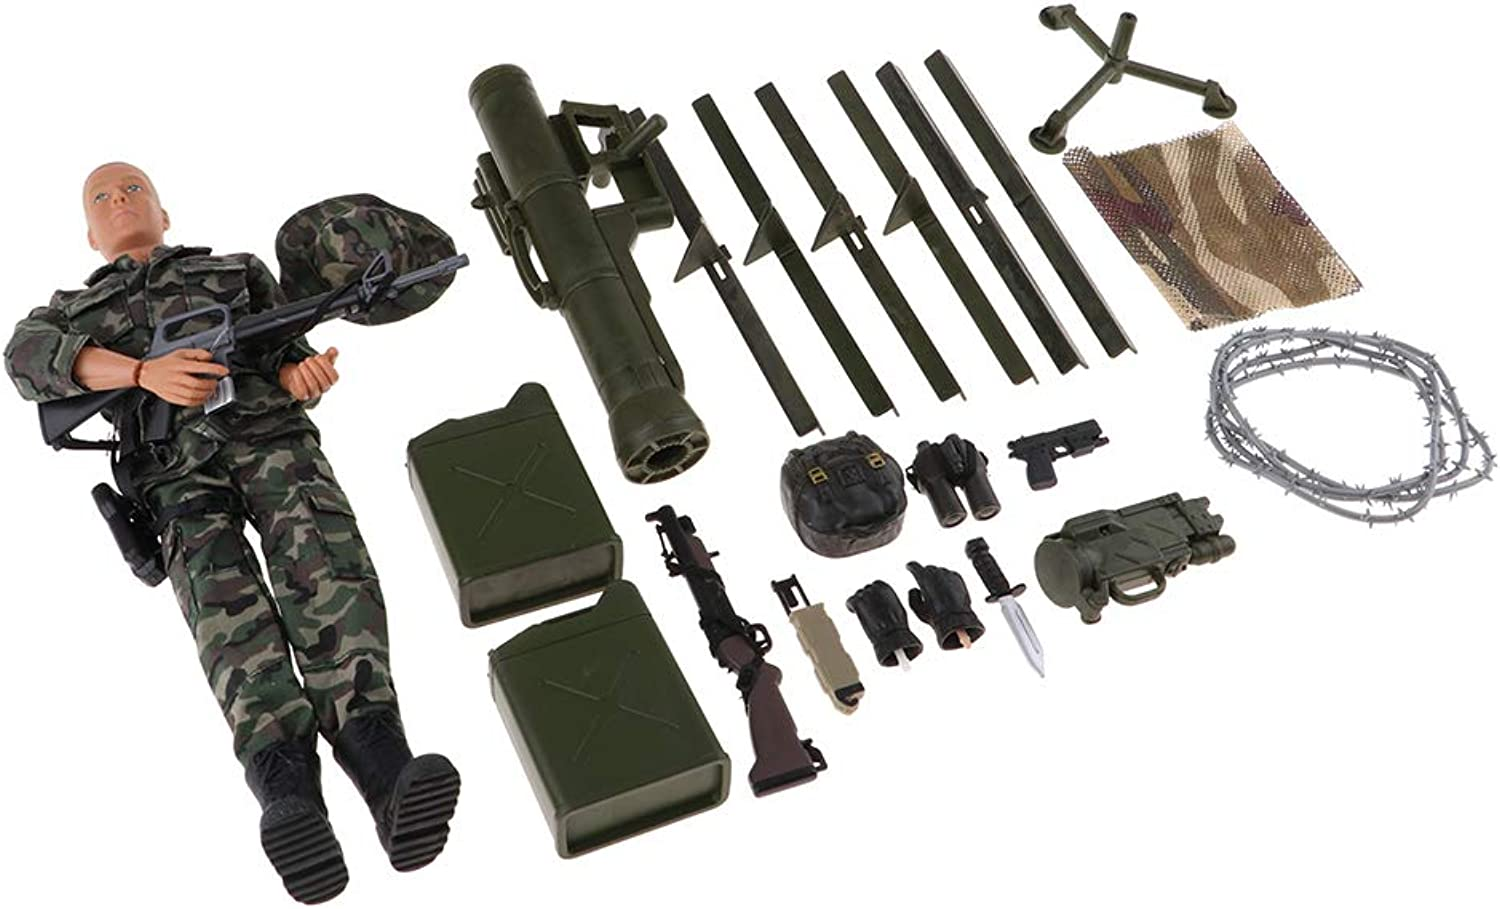 Fityle 1 6 12inch Movable Action Figure Doll Military Army Combat Soldier Model Clothes Set Toy